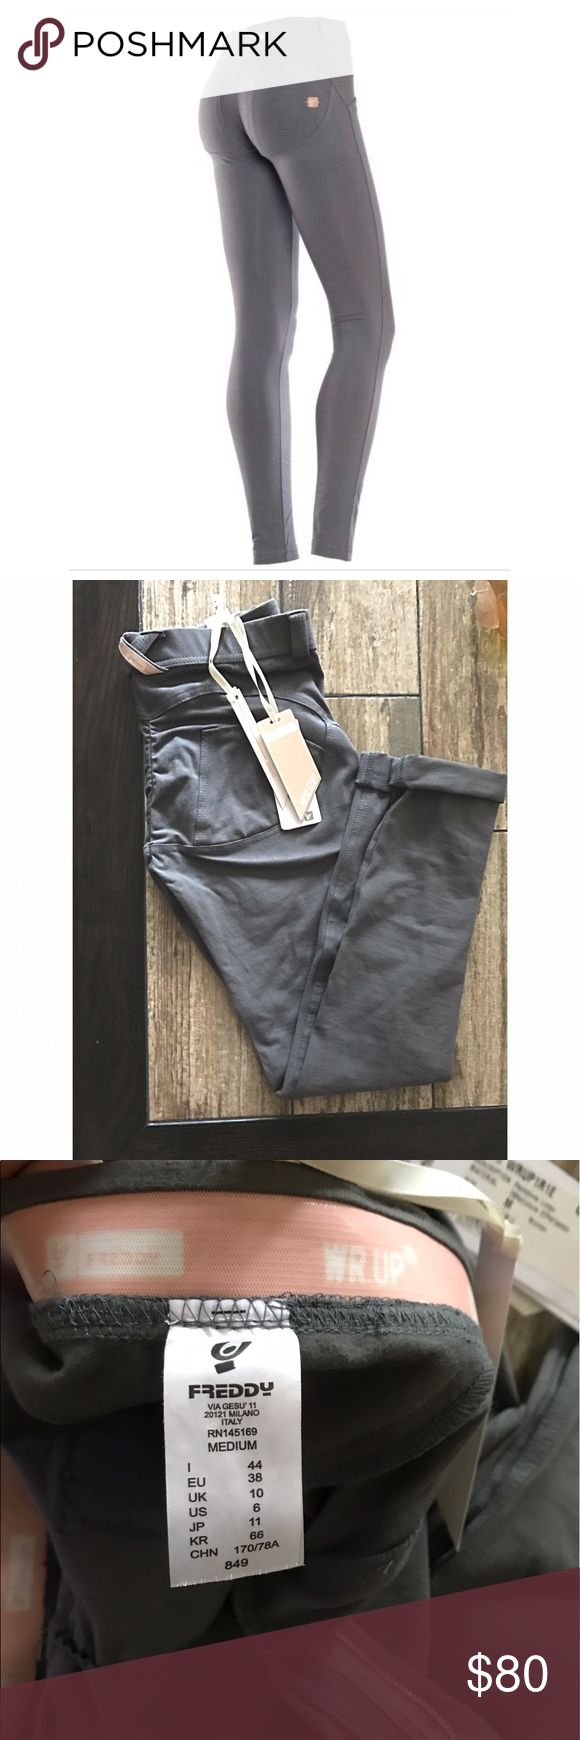 NWT size medium Freddy skinny pants NWT Freddy pants. Color is dark grey, regular rise, full length legging/skinny style. Purchased from another posher but they were too big. Looking to sell or trade for a small! The best pants you will ever own! Freddy Pants Leggings